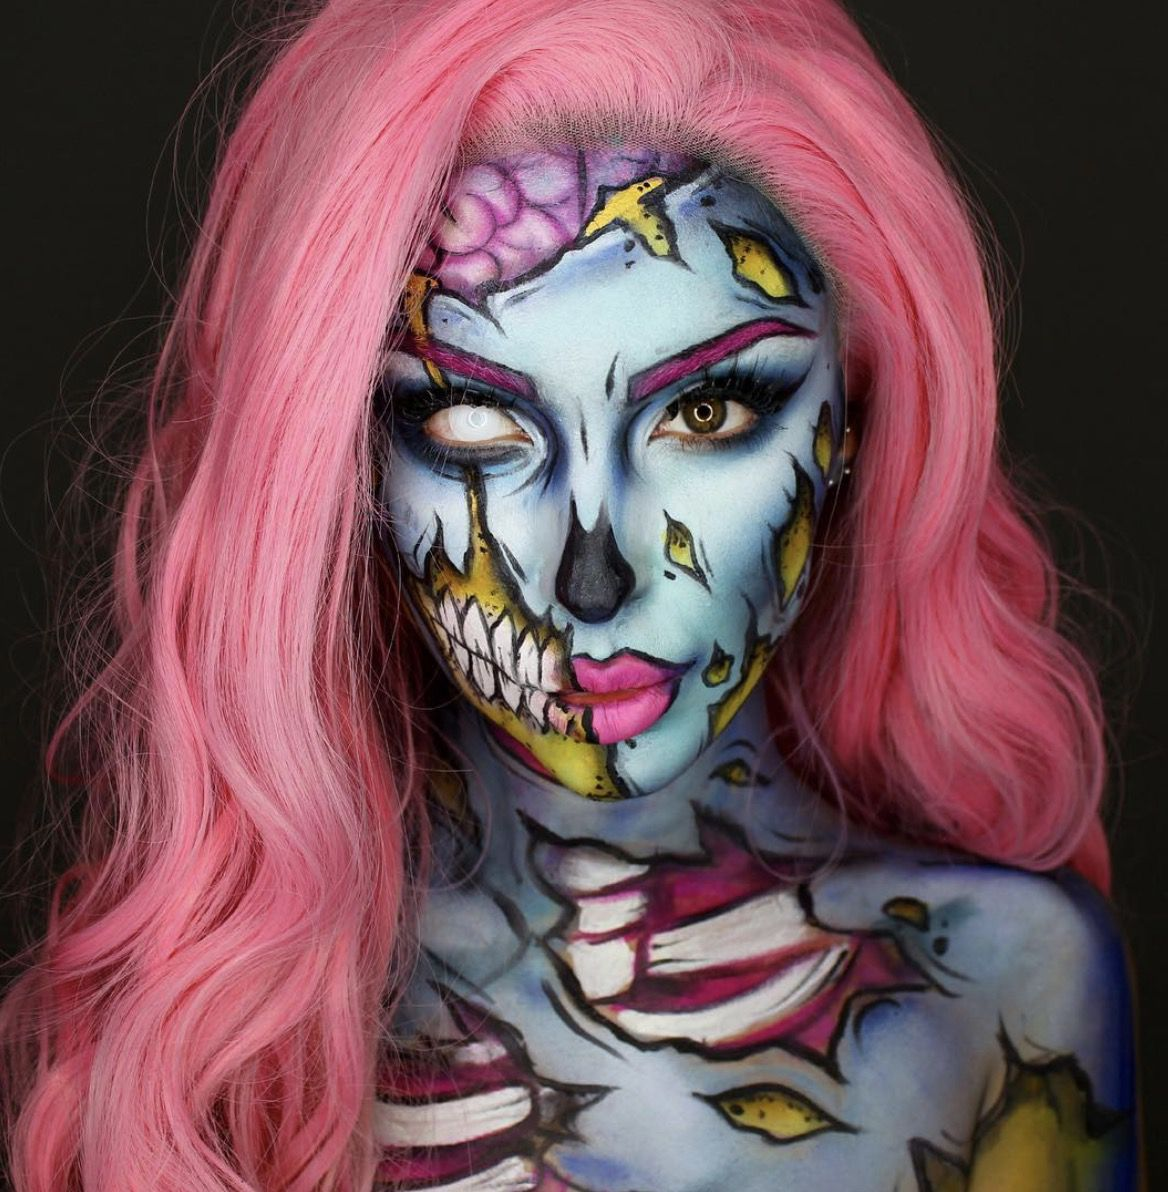 41 Most Jaw-Dropping Halloween Makeup Ideas That Are Still Pretty: Pretty Half Skull Makeup / Click though to see more awe inspiring pretty Halloween makeup looks, gorgeous Halloween makeup and Halloween costumes. #halloweenmakeup #halloweenmakeuppretty #halloweencostumes #halloweenmakeupinspo #halfskullmakeup #skullmakeup